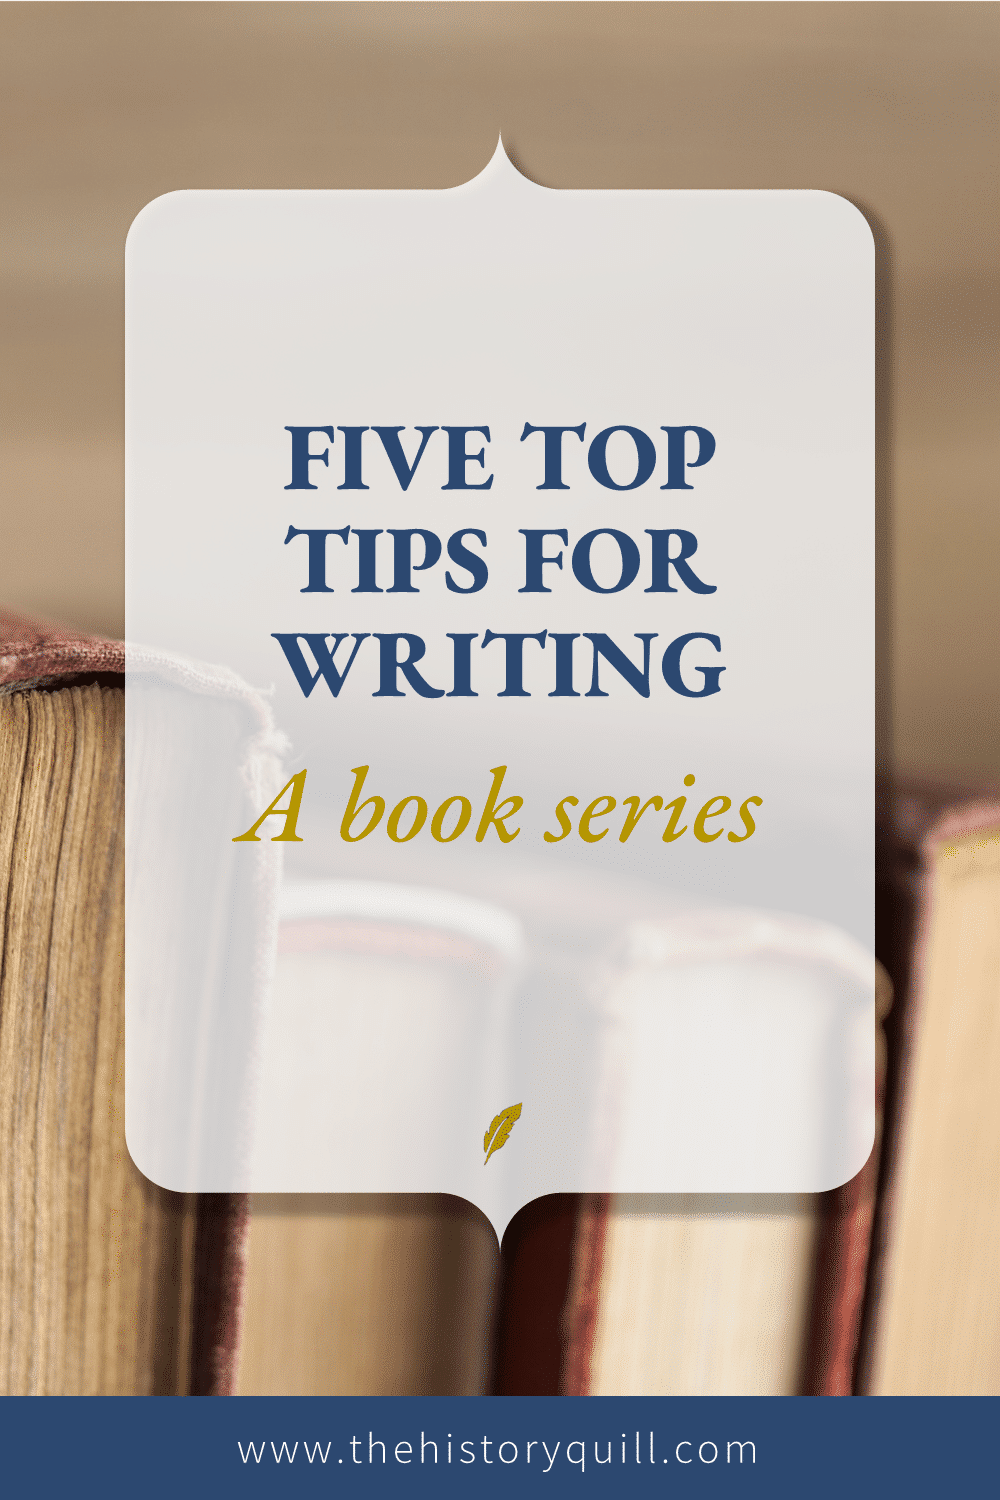 From The History Quill blog, five top tips for writing a historical fiction book series.